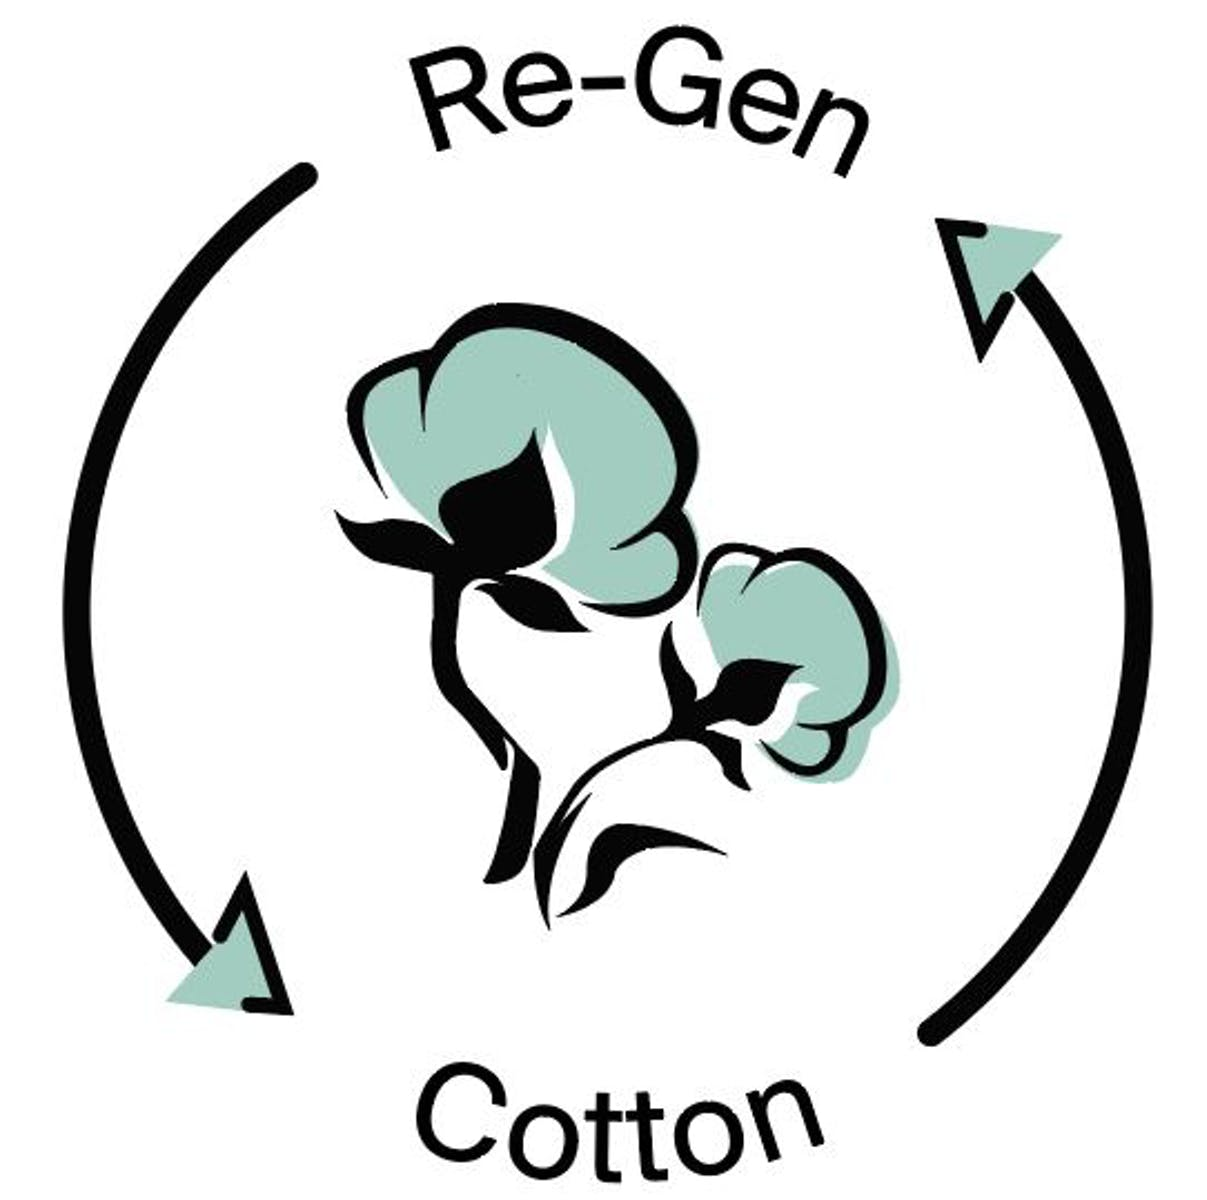 Re-Gen Cotton  certification